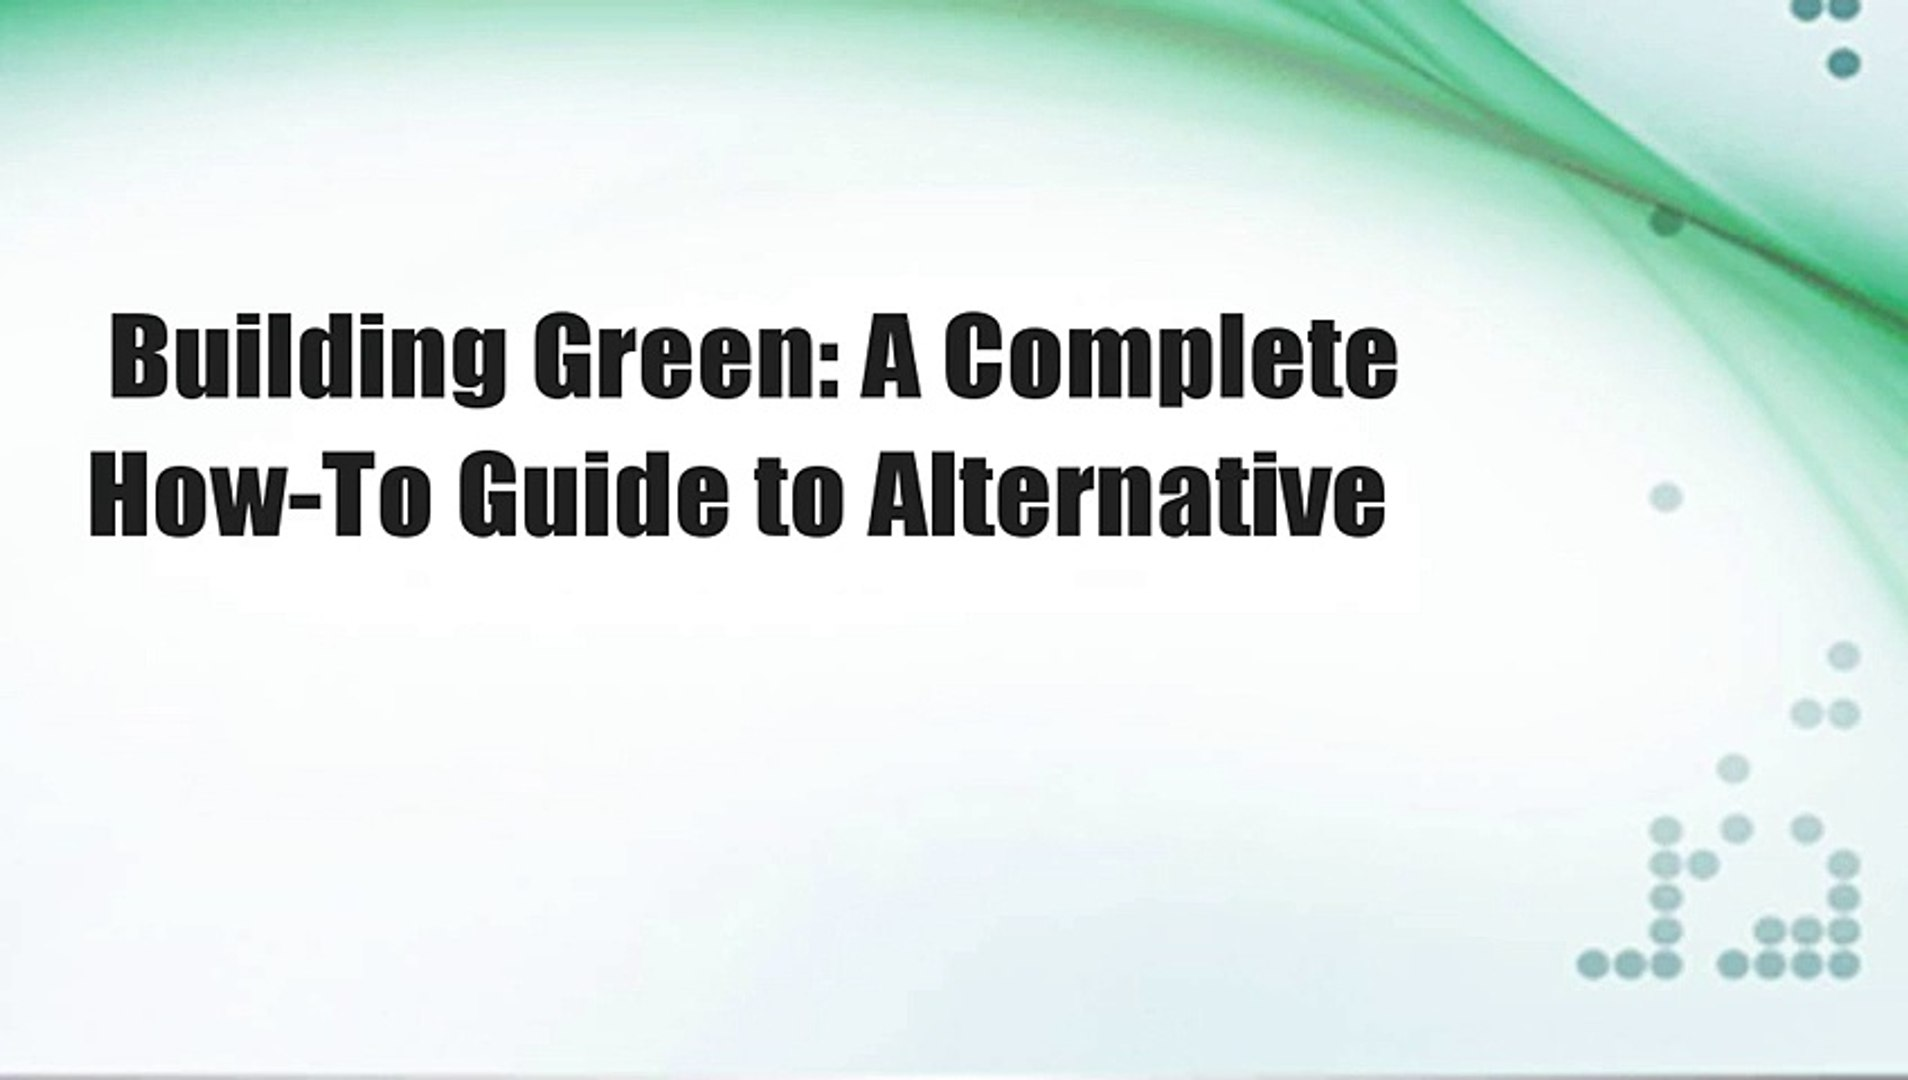 Building Green: A Complete How-To Guide to Alternative